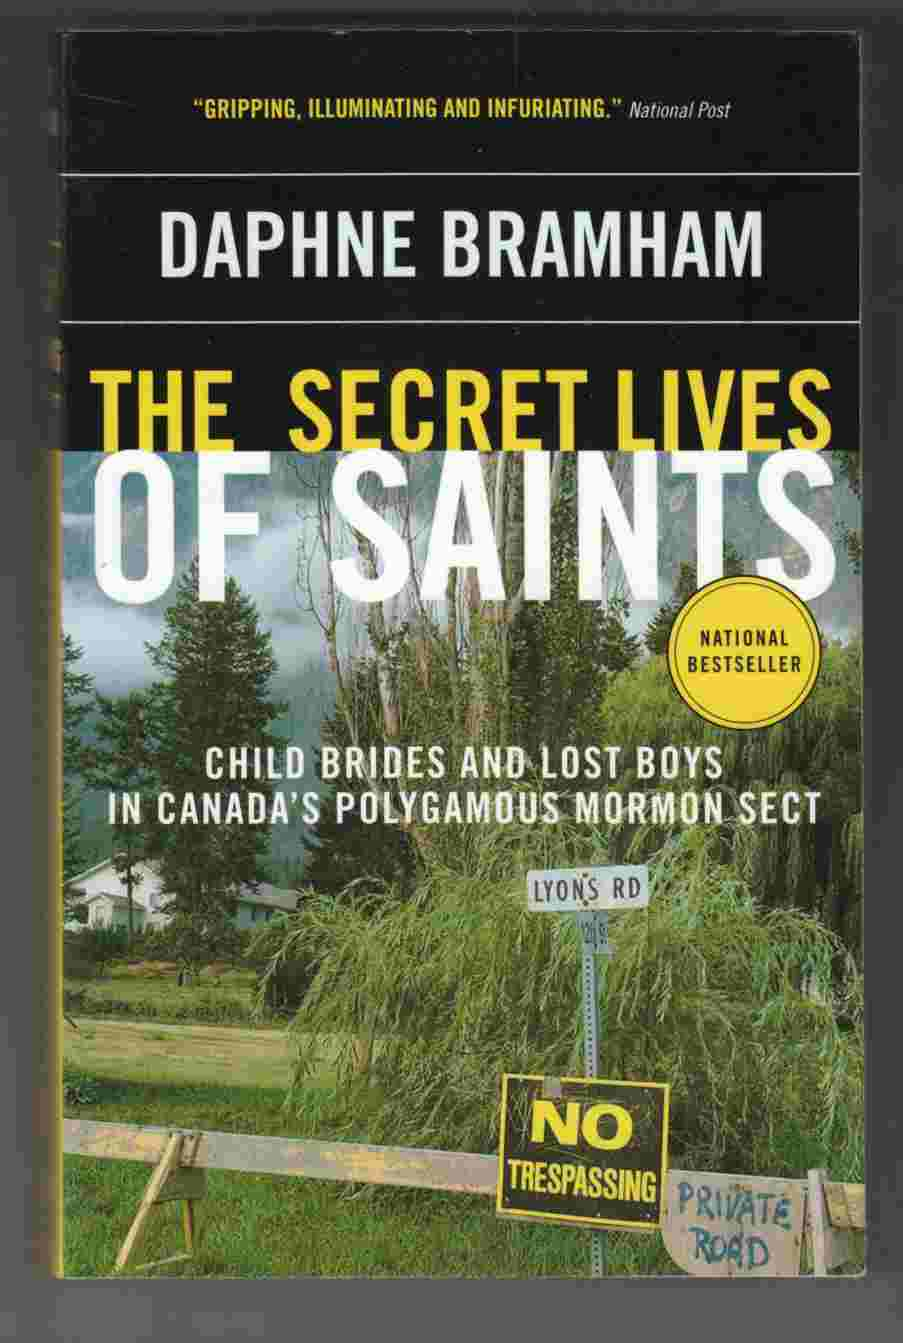 Image for The Secret Lives of Saints Child Brides and Lost Boys in Canada's Polygamous Mormon Sect